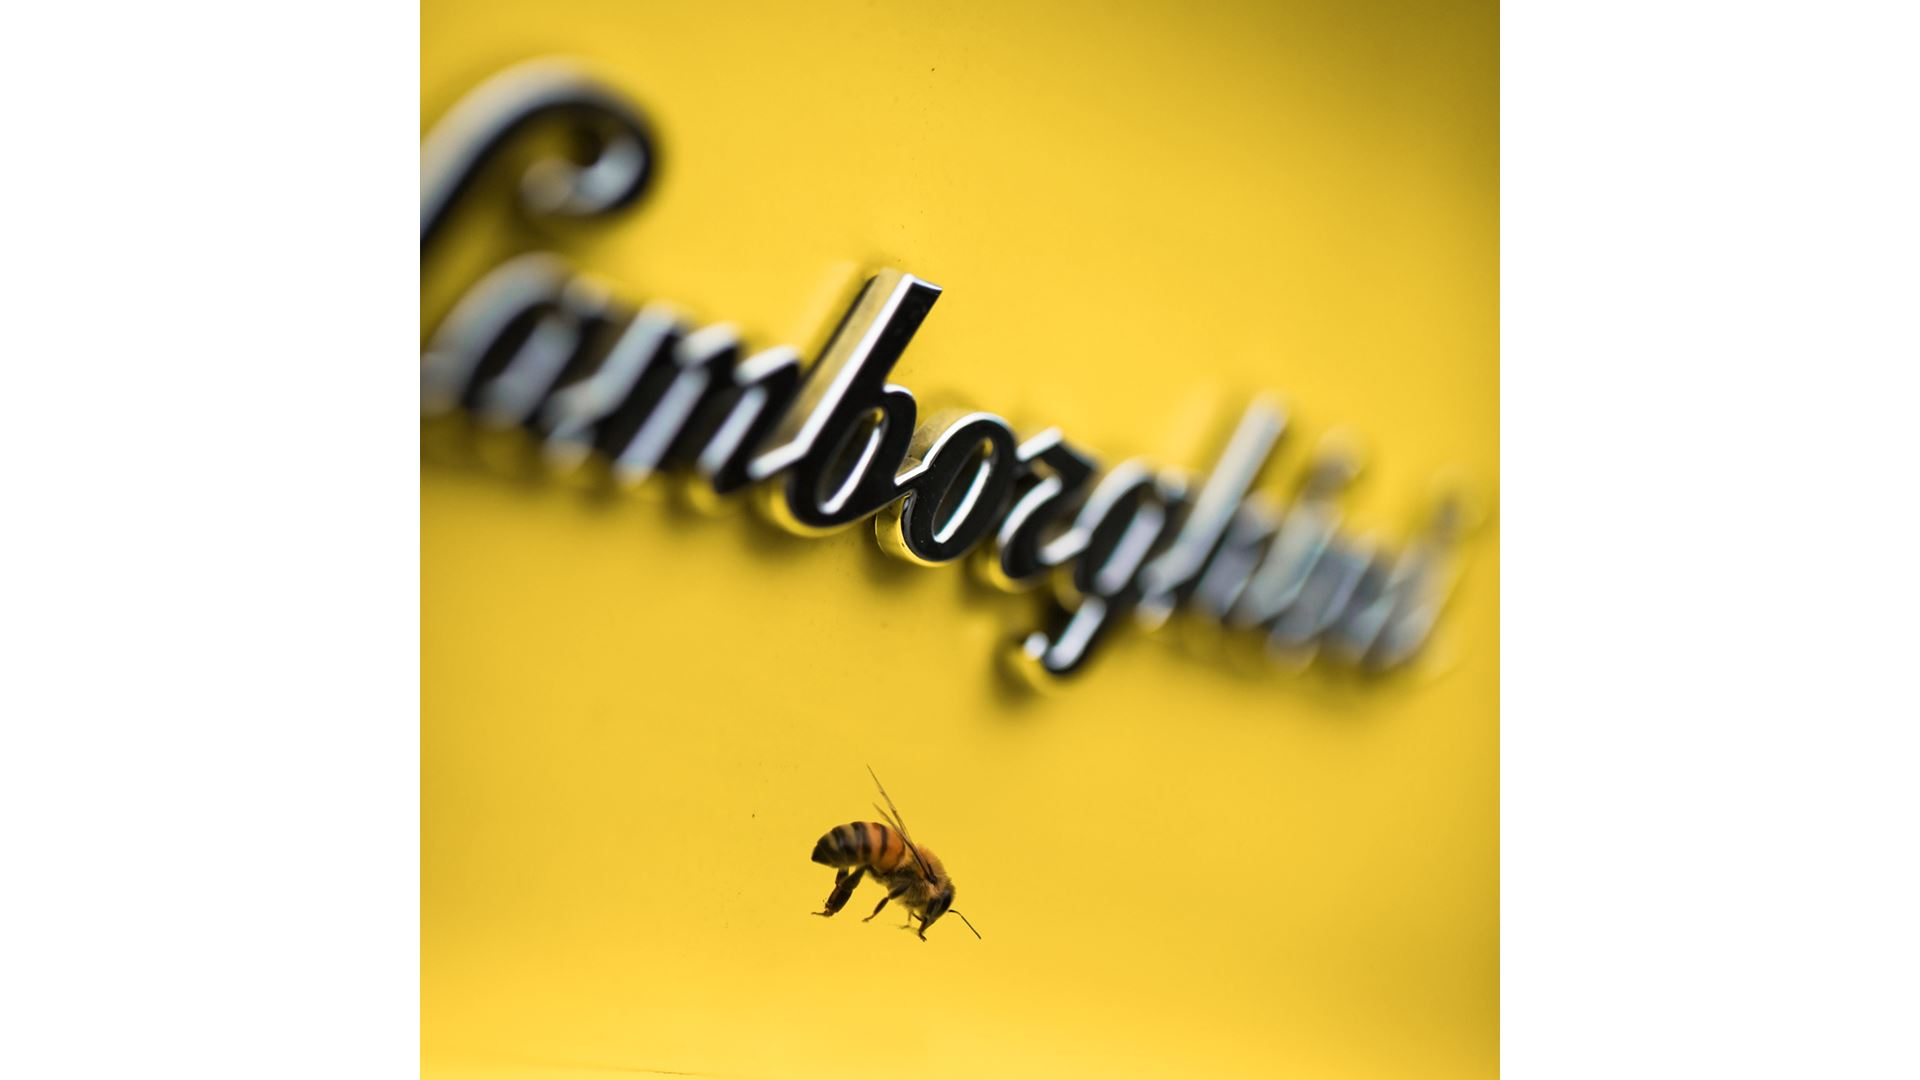 May 20, World Bee Day: Since 2016 Lamborghini has worked with bees in an environmental biomonitoring project - Image 8